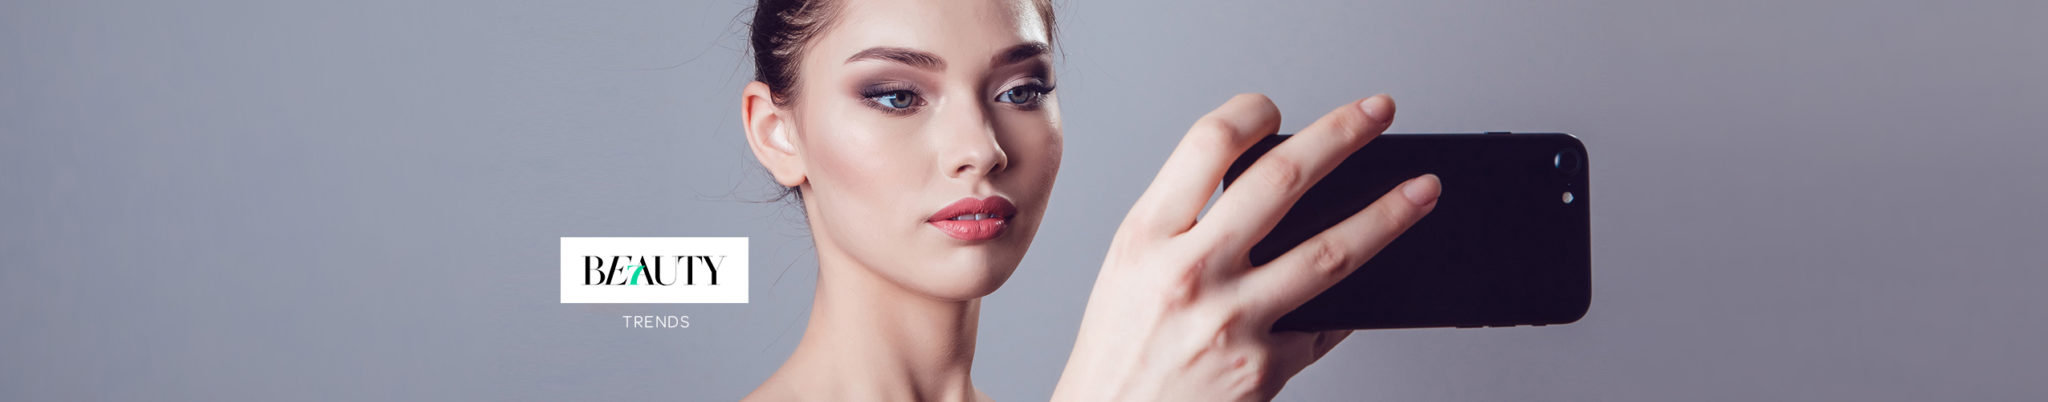 beauty-page-trends